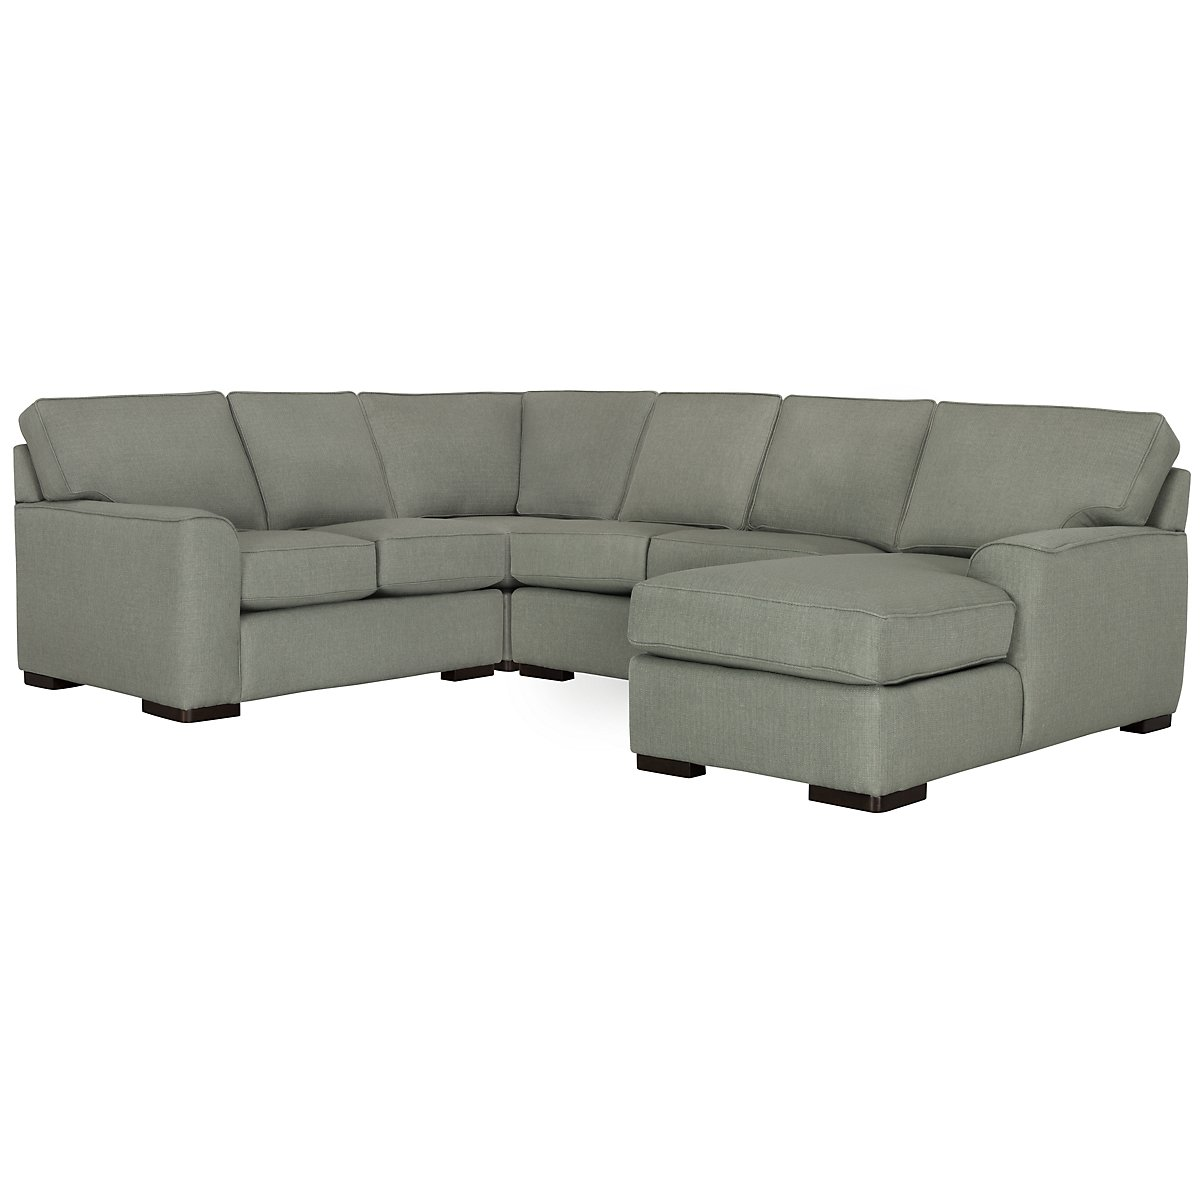 Austin Green Fabric Medium Right Chaise Sectional